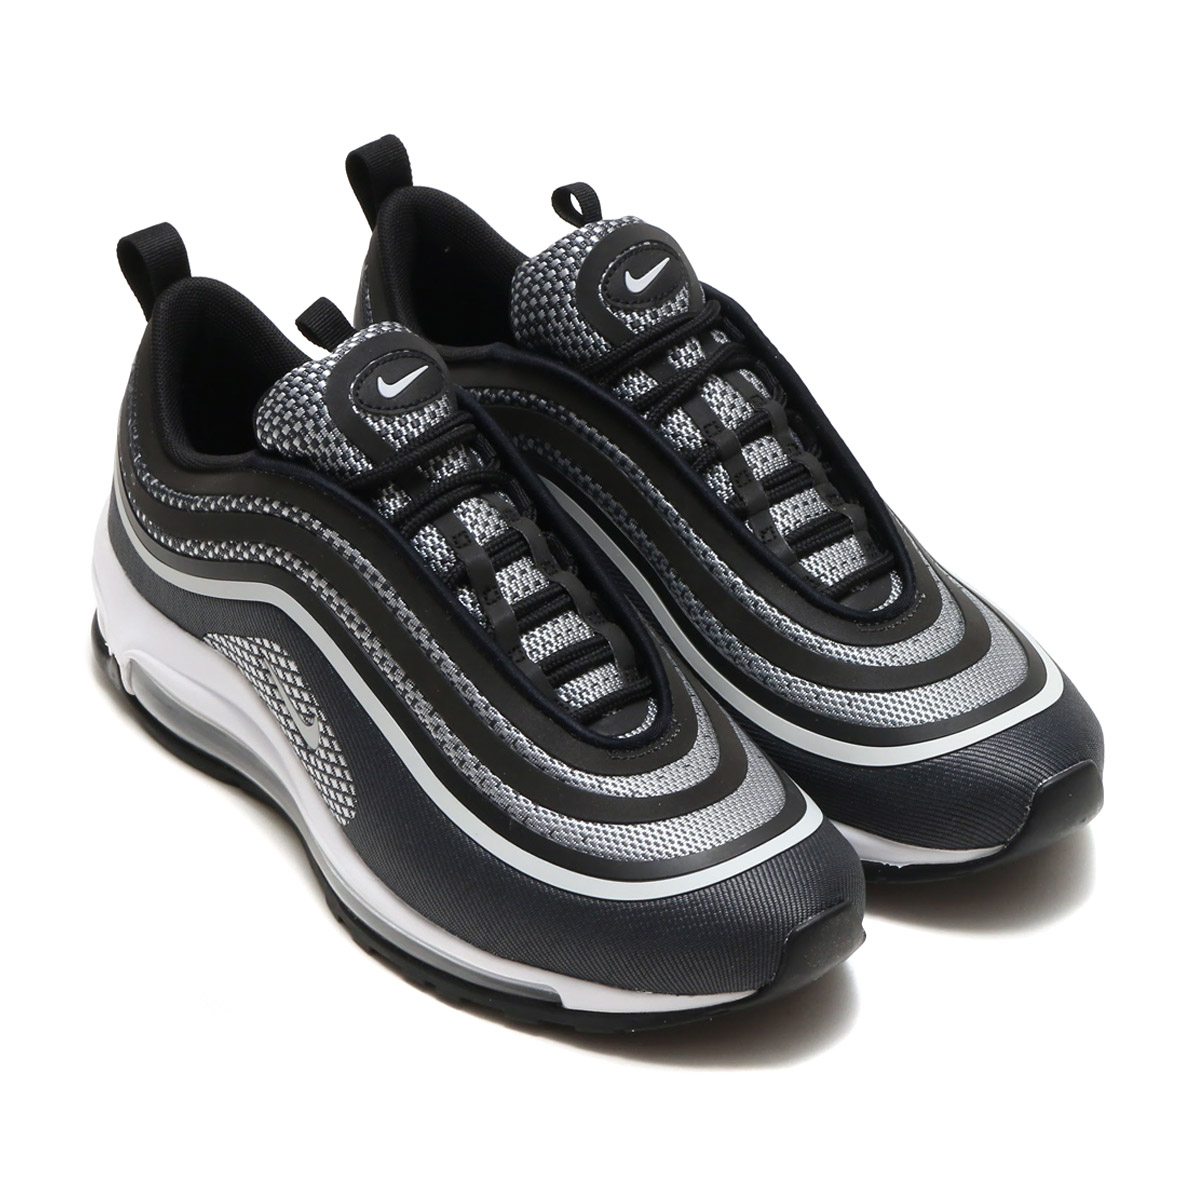 bc5debd016f0 The Air Max 97 ultra that updated a futuristic original model with  refreshing modern structure. Mesh and a knit material are light  wear it